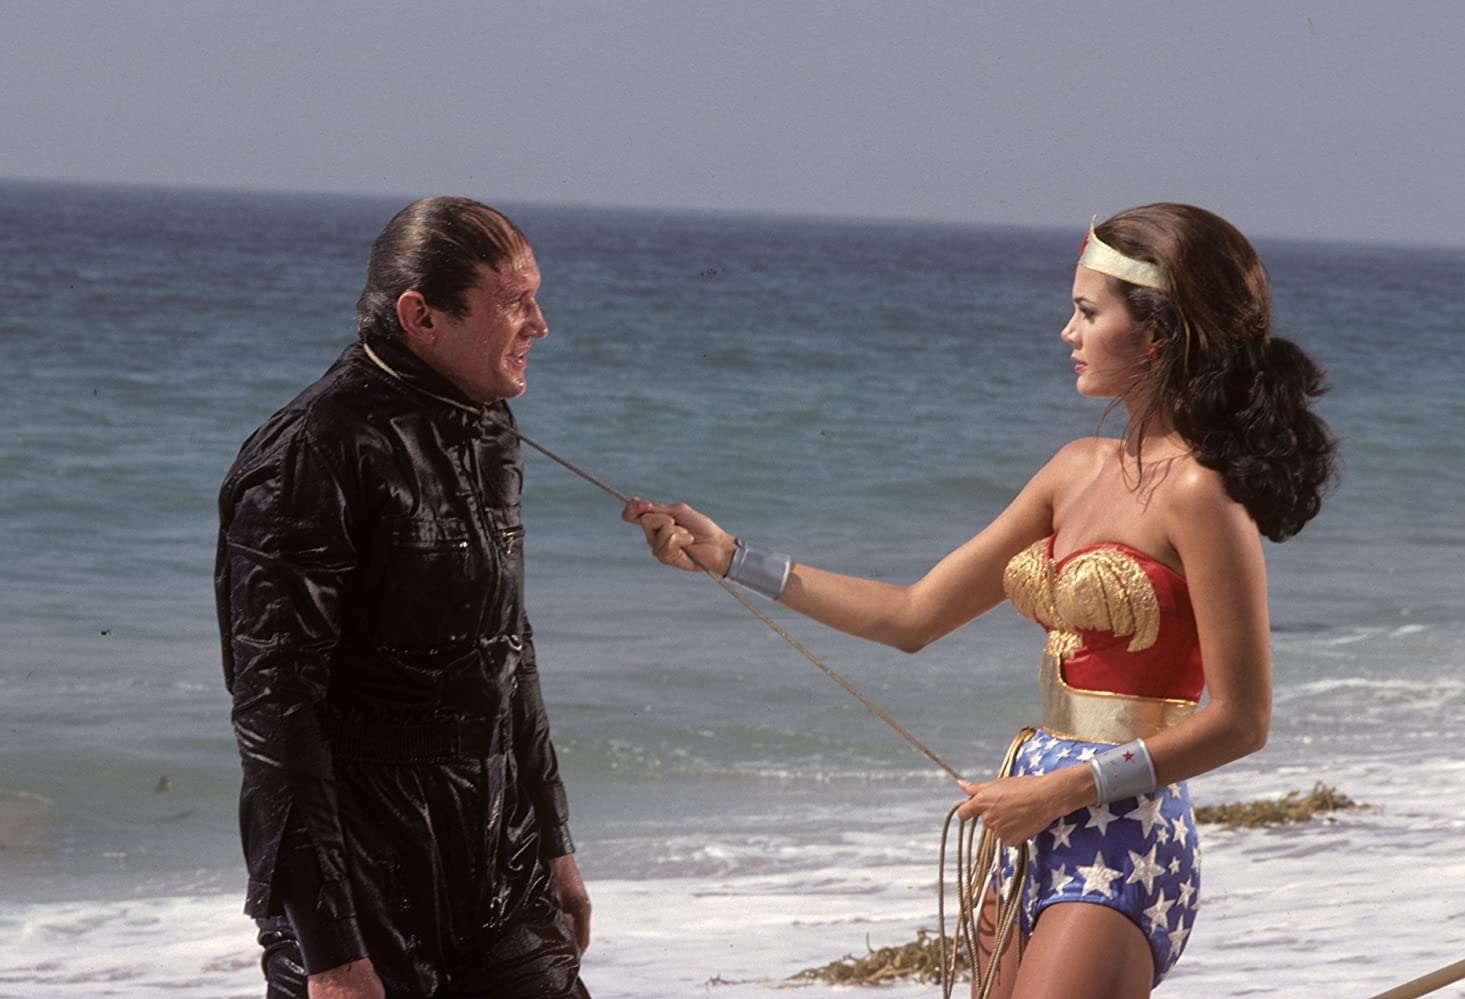 Lynda Carter and James Olson in Wonder Woman (1975)